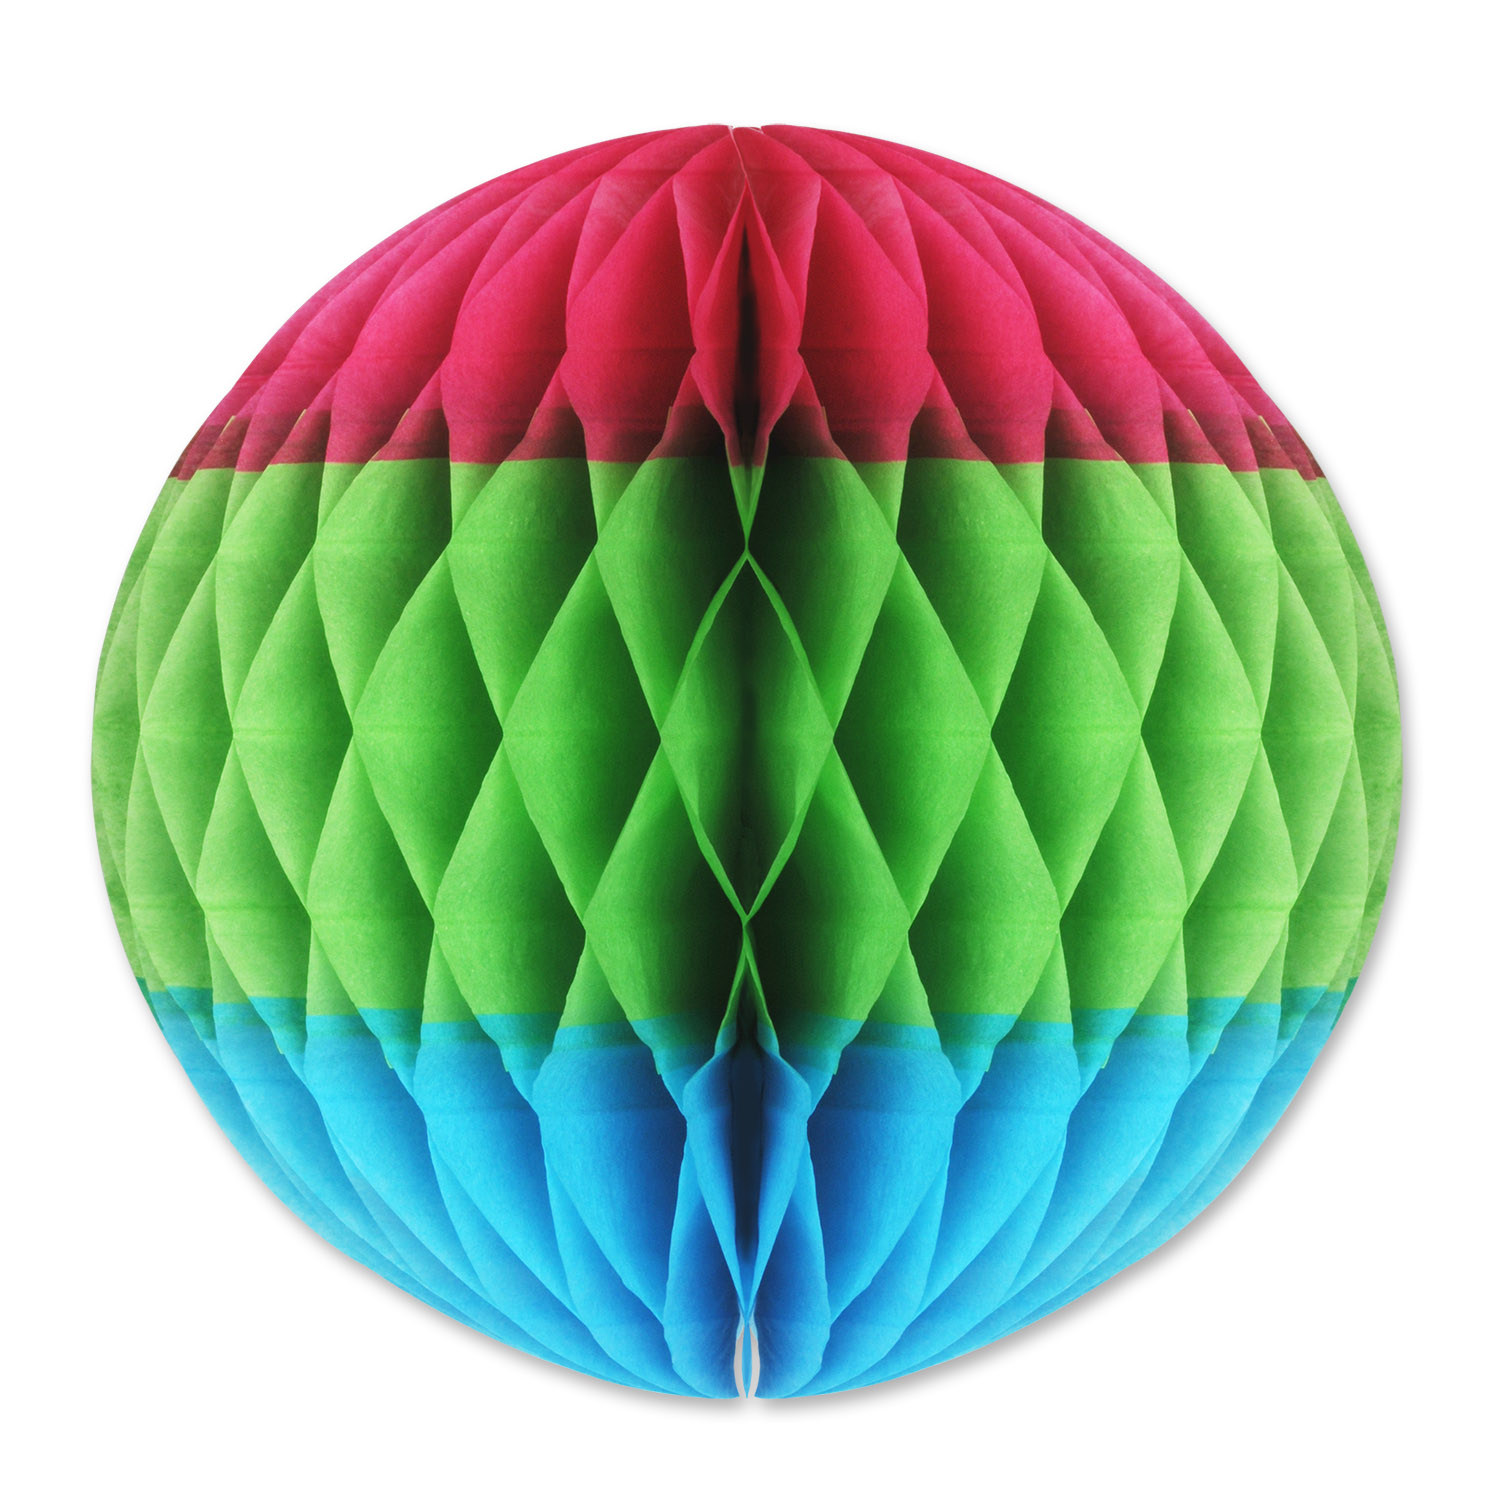 Tri-Color Tissue Ball (Pack of 12) Tri-Color Tissue Ball, decoration, luau, new years eve, wholesale, inexpensive, bulk